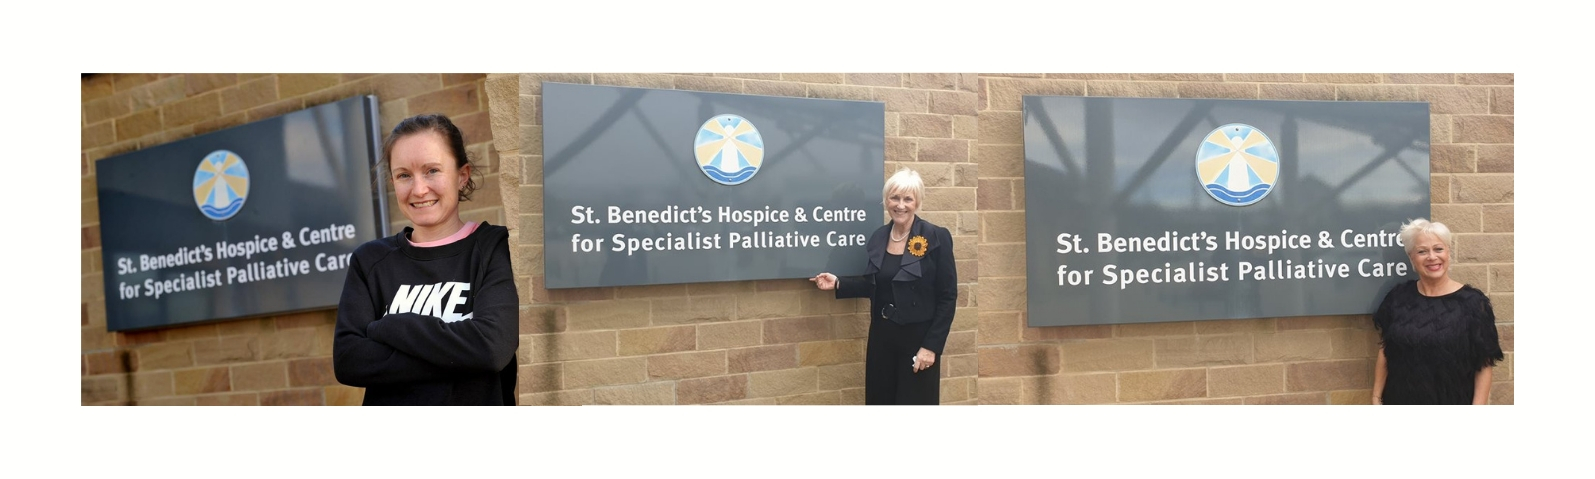 St Benedict's Hospice And Centre For Specialist Palliative Care